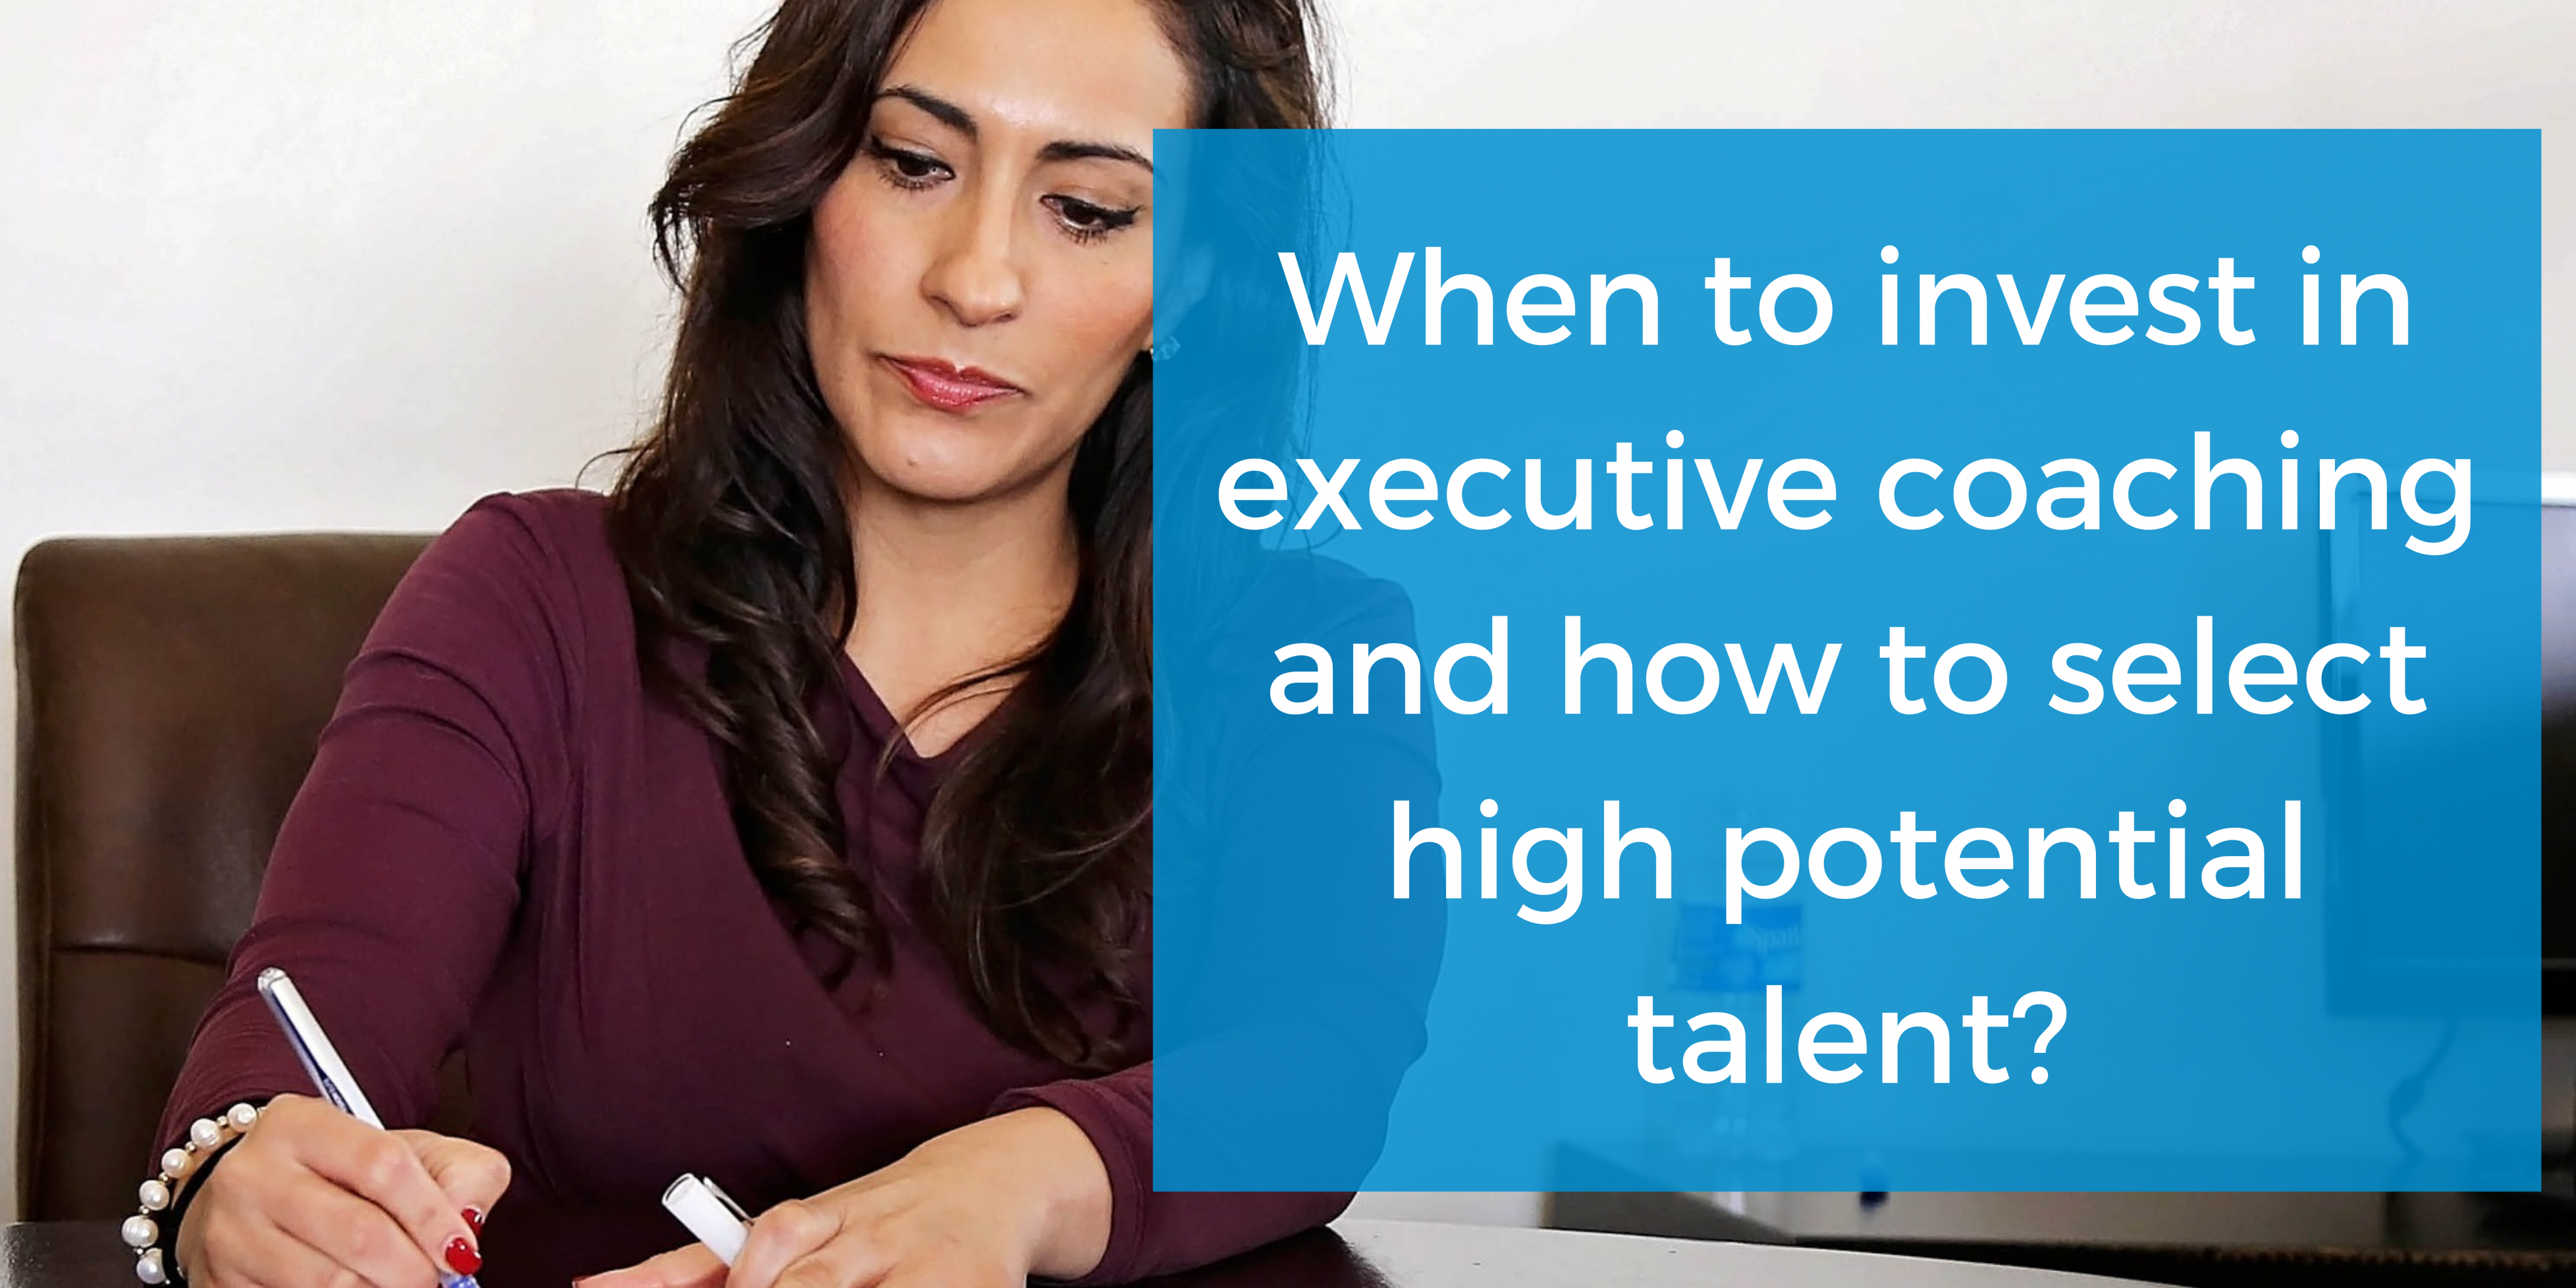 When to invest in executive coaching and how to select high potential talent?